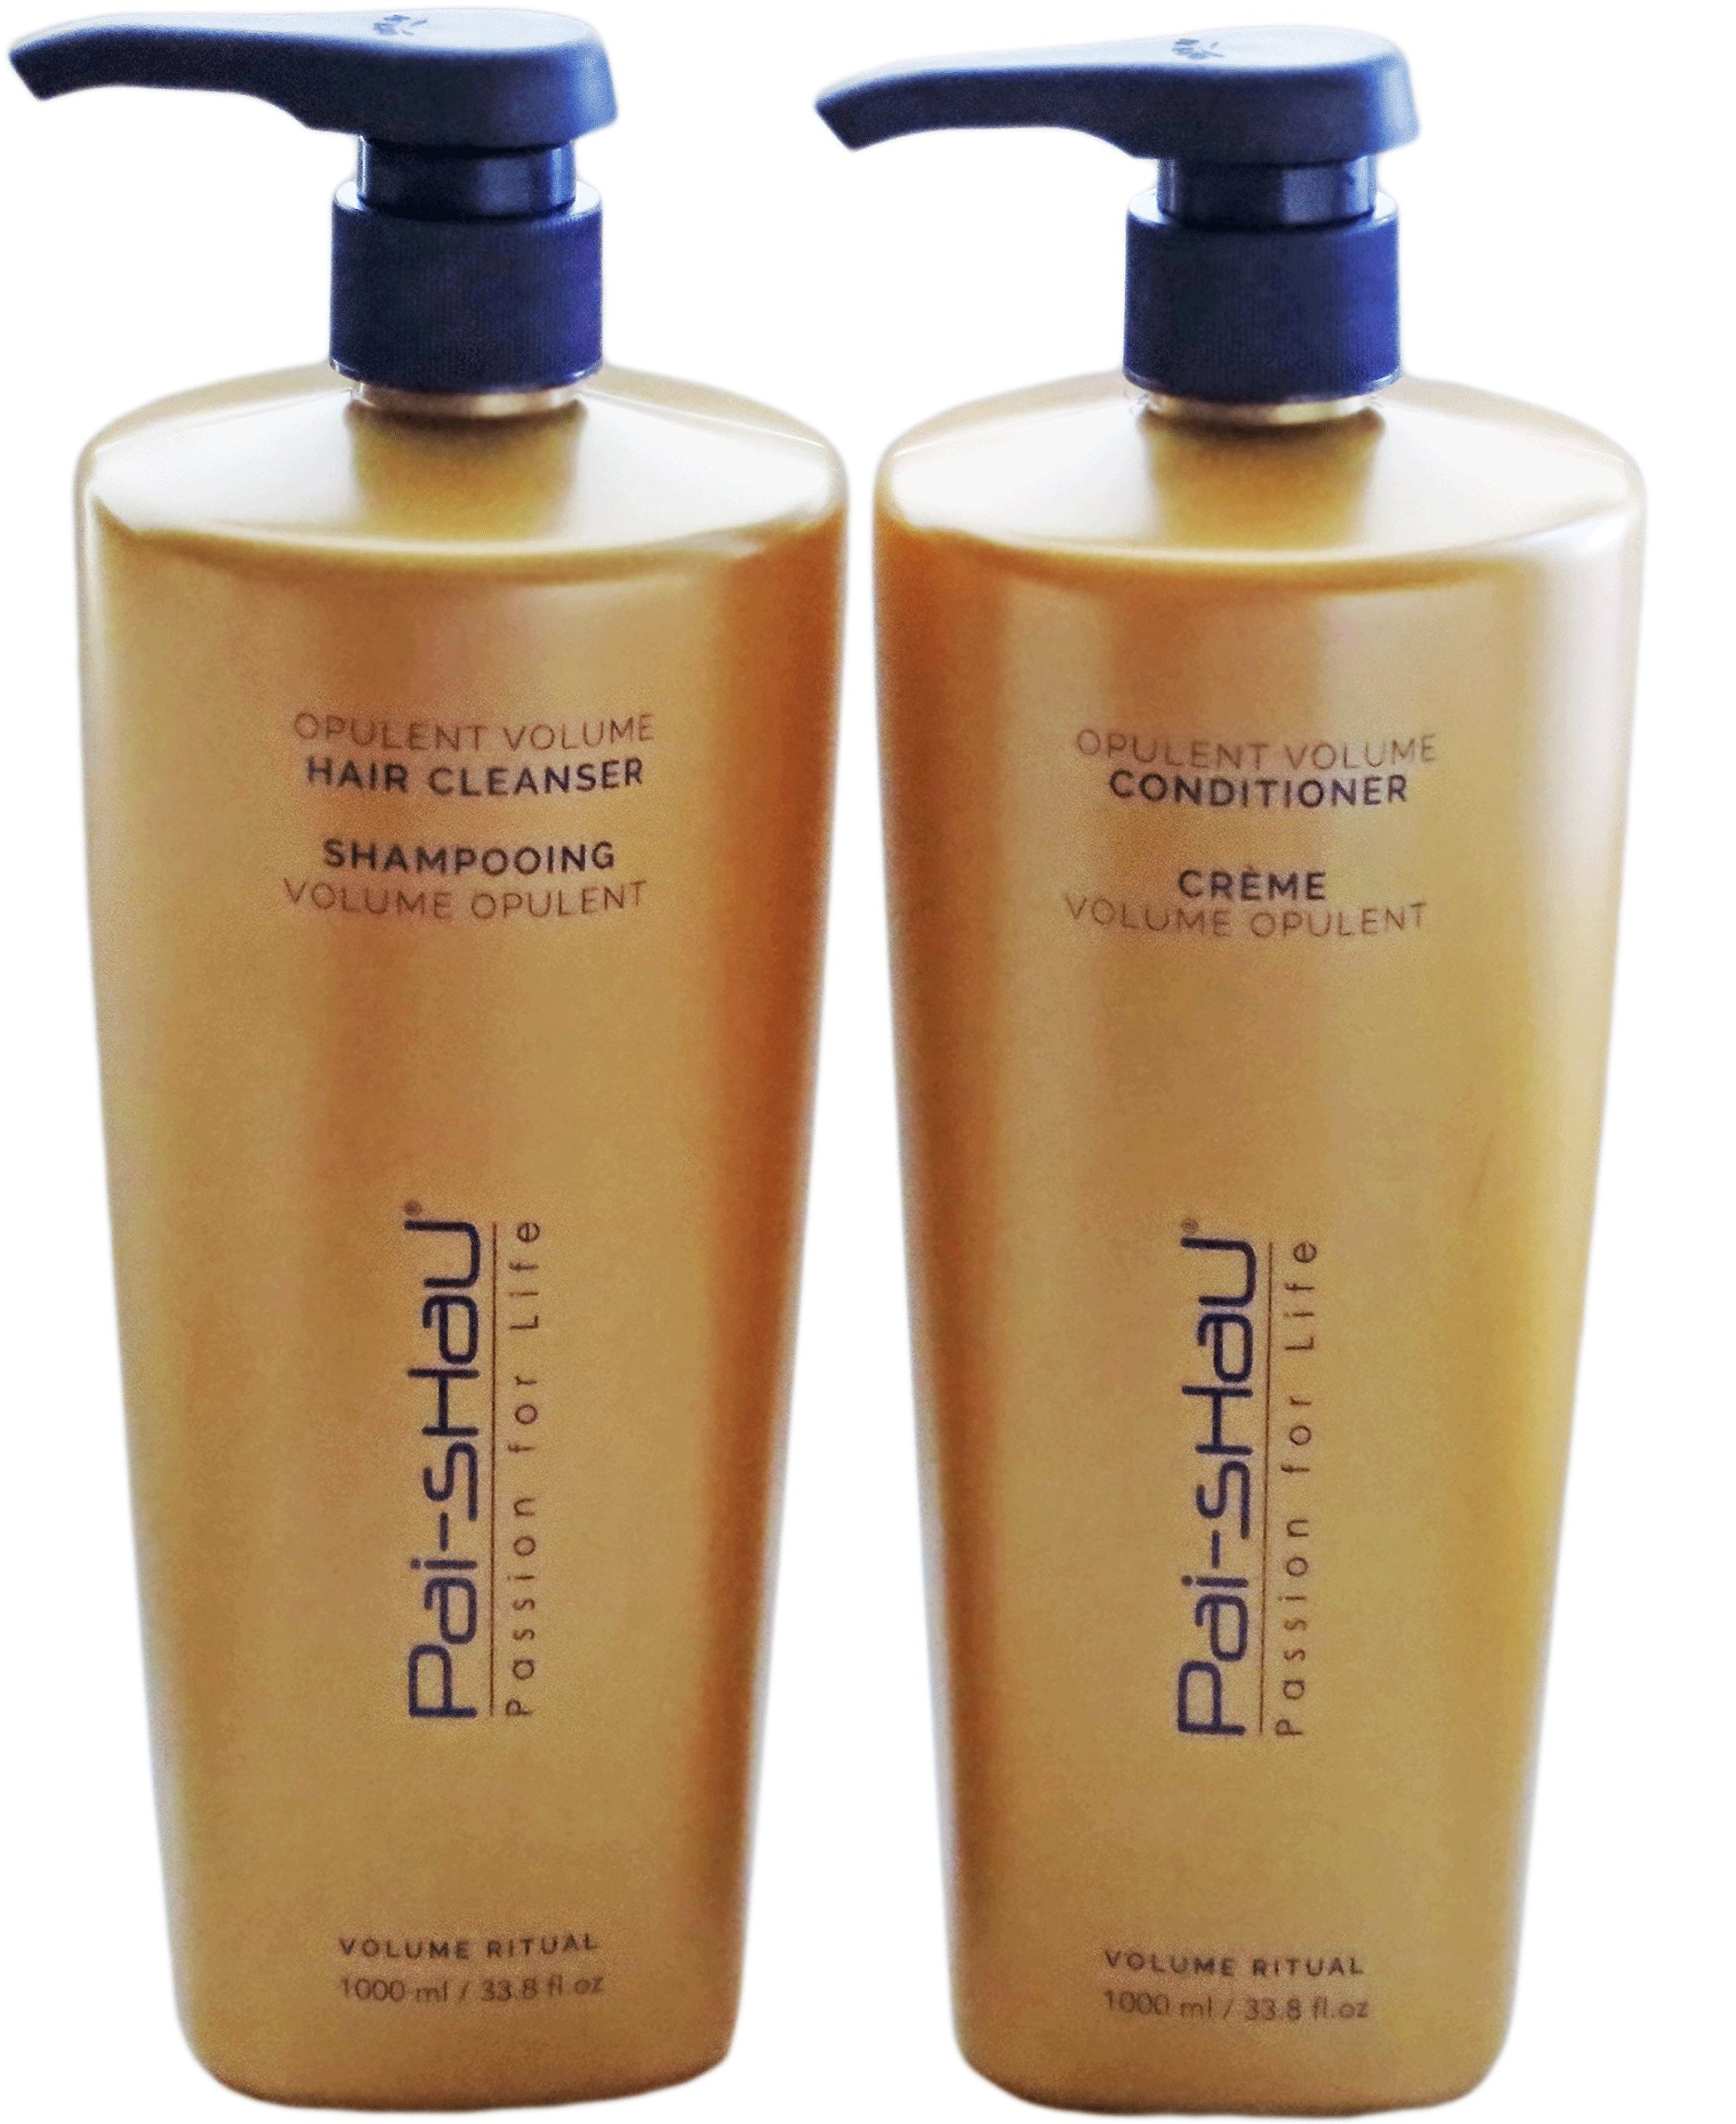 Pai Shau Opulent Volume Shampoo and Conditioner For Fine Hair 33.8 Oz / Liter Duo